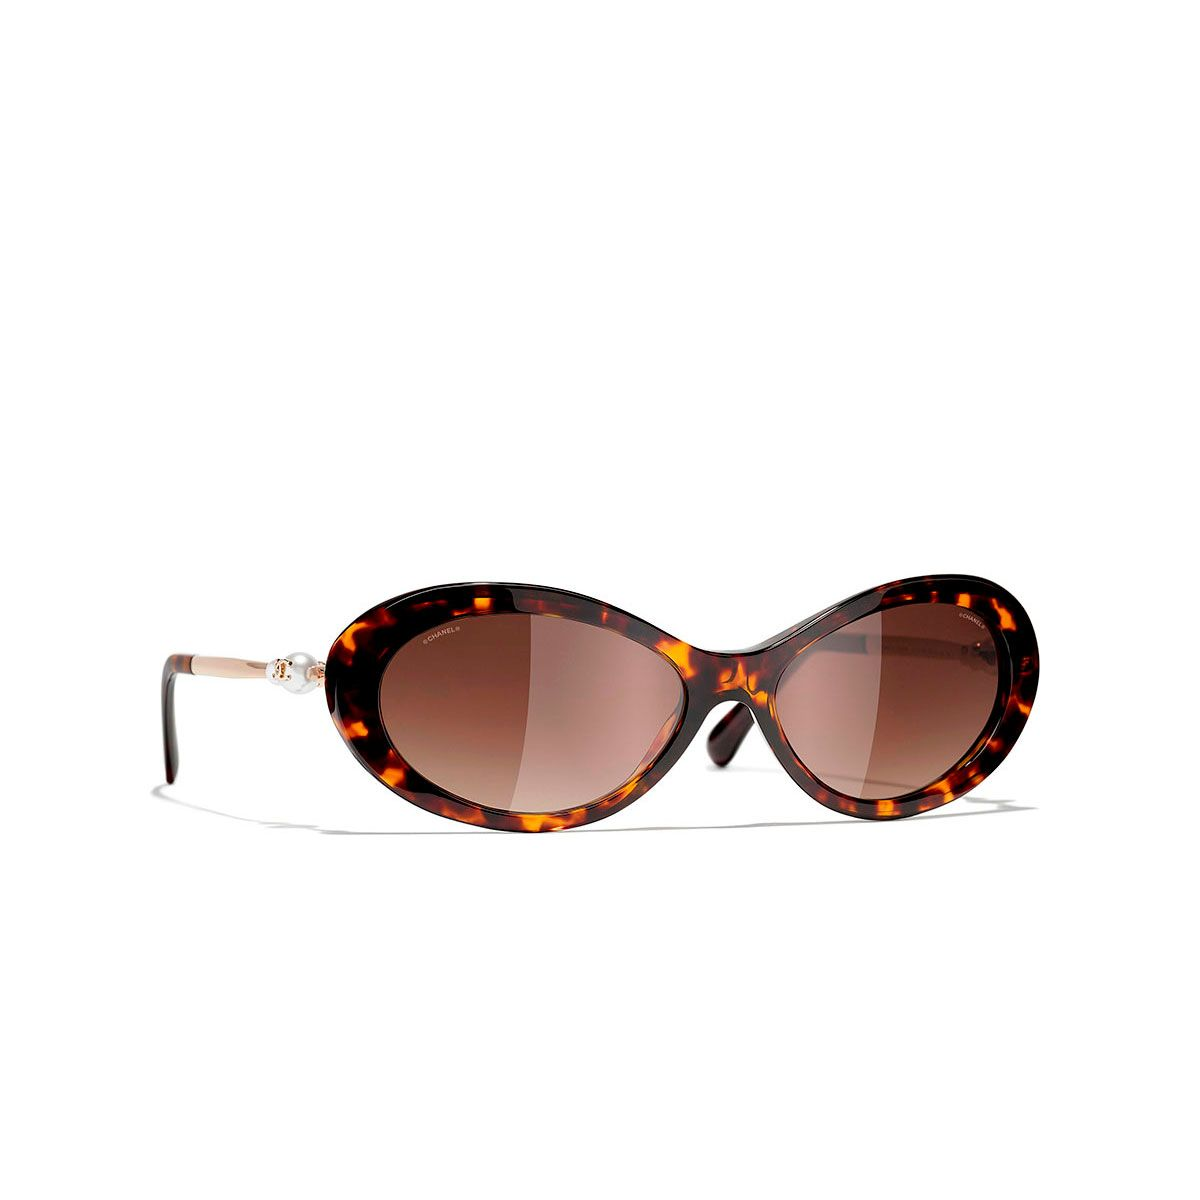 Oval Sunglasses 330 Sunglasses